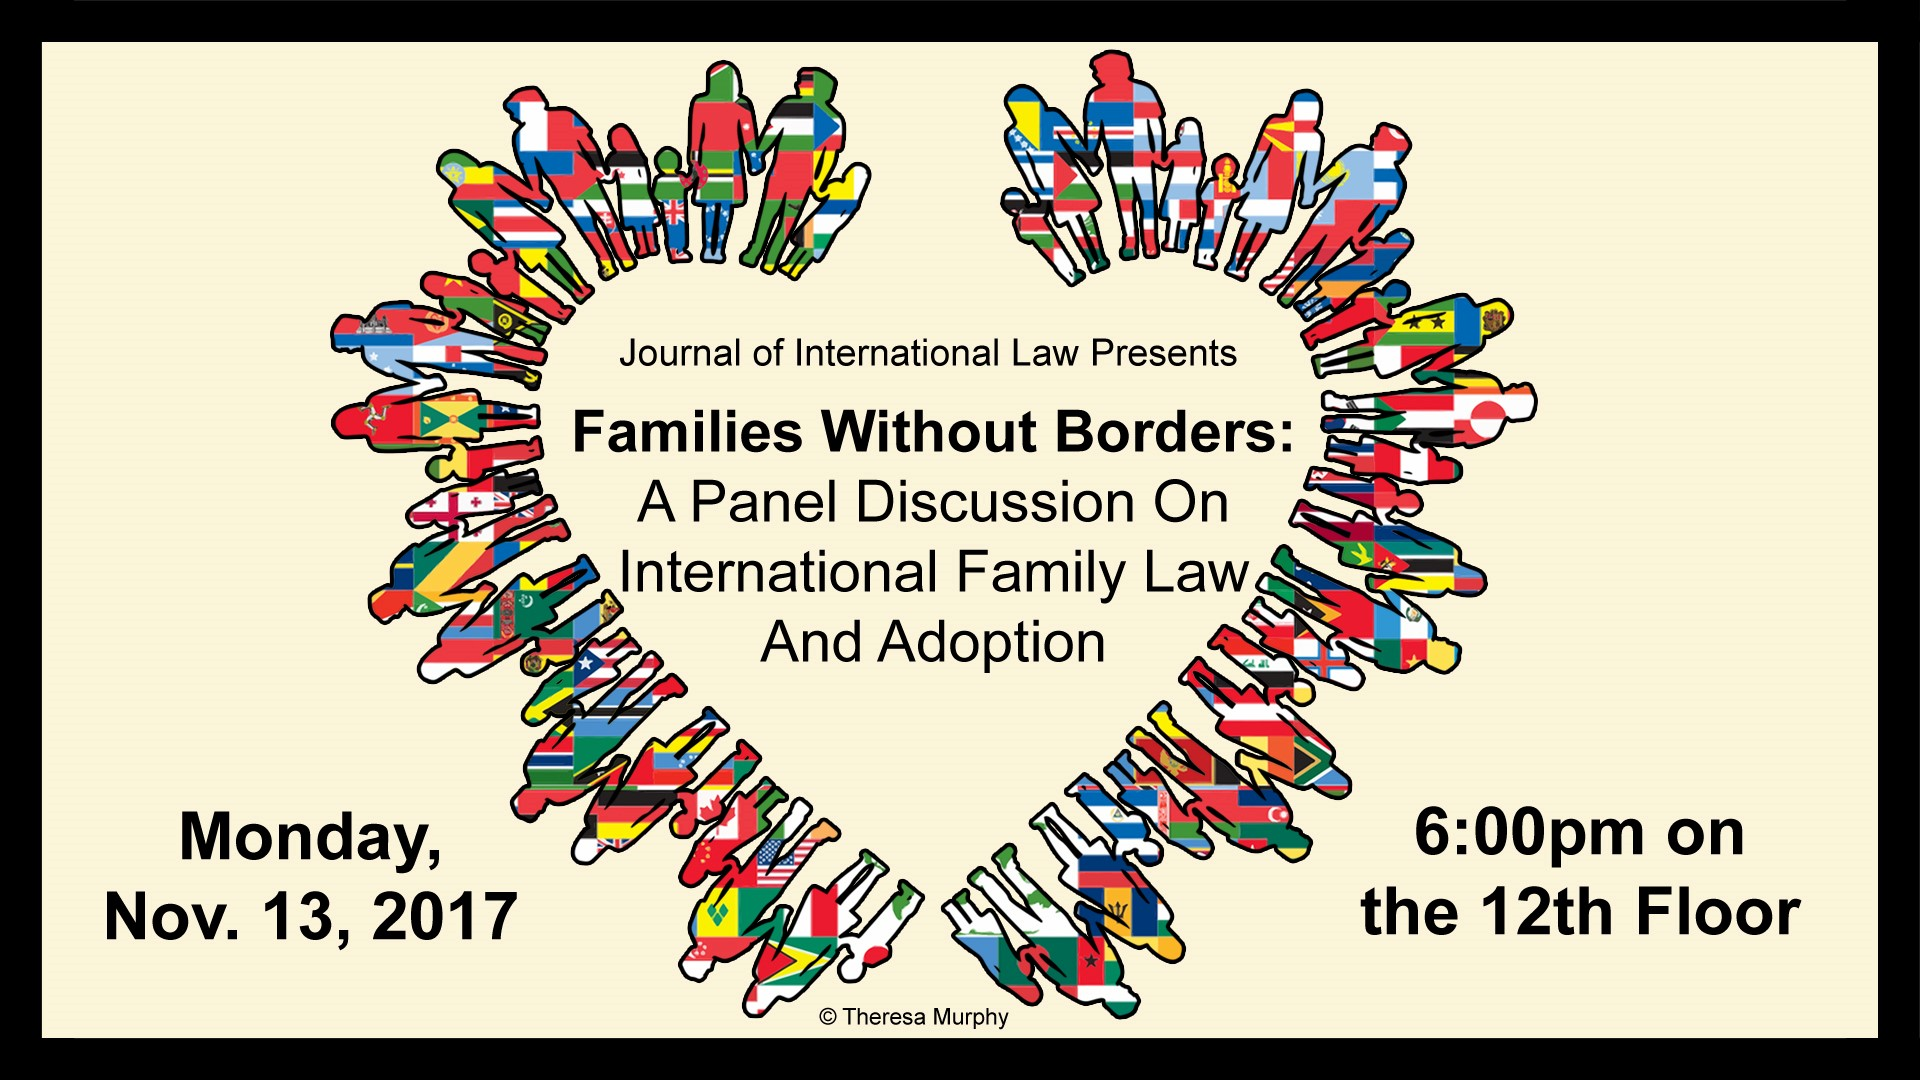 Families Without Borders: A panel discussion on international family law and adoption